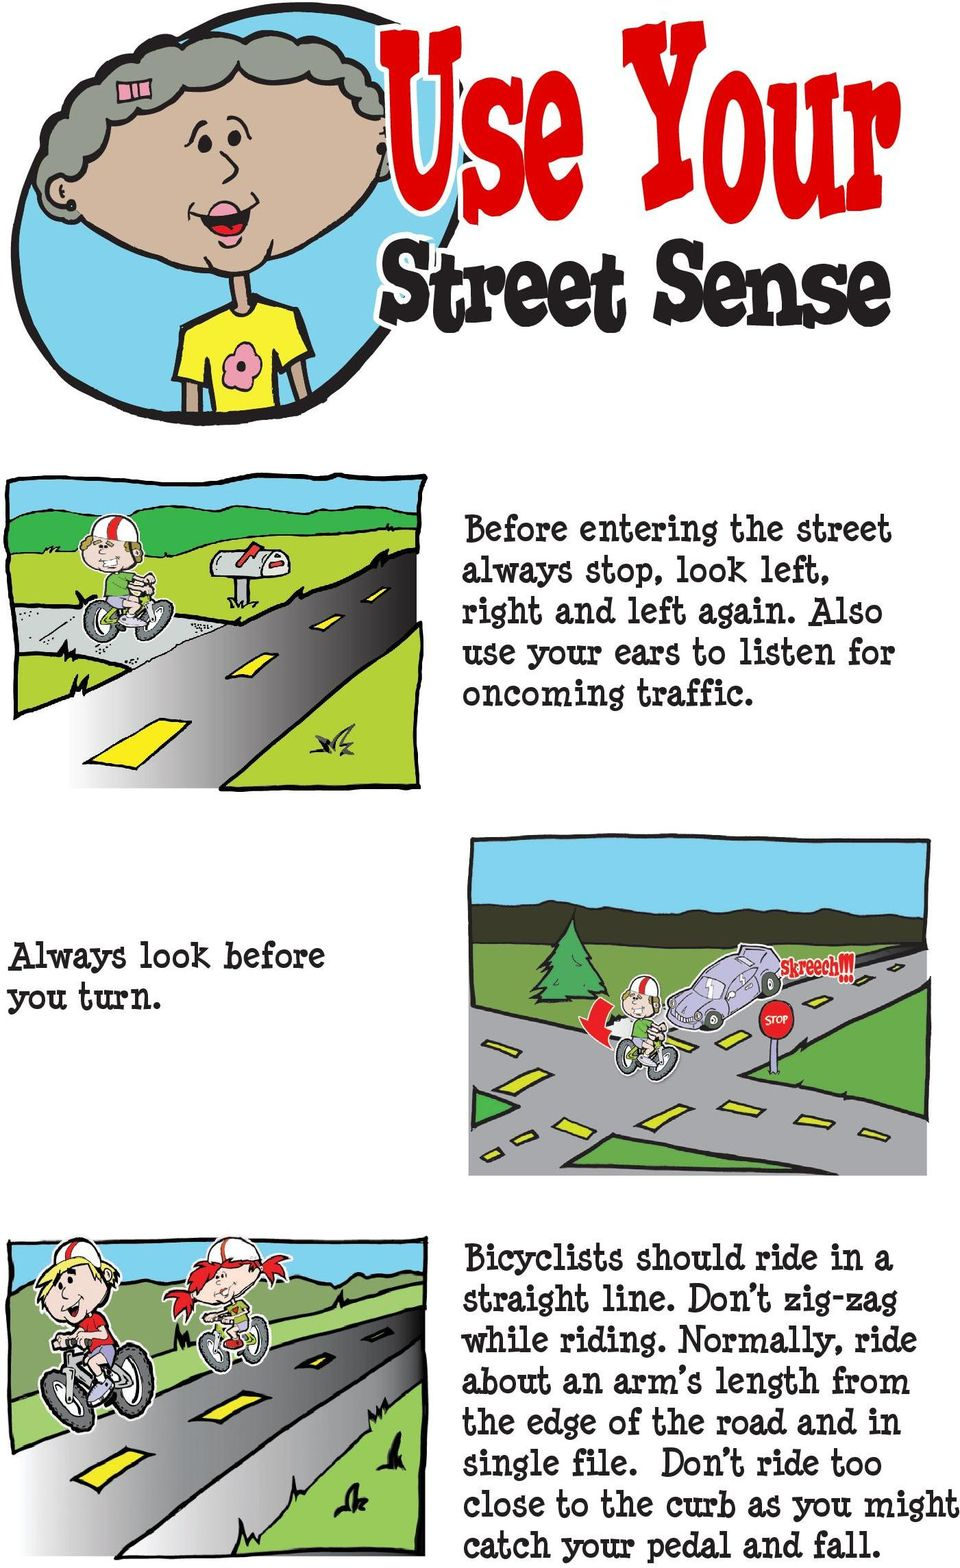 Bicyclists should ride in a straight line. Don t zig-zag while riding.